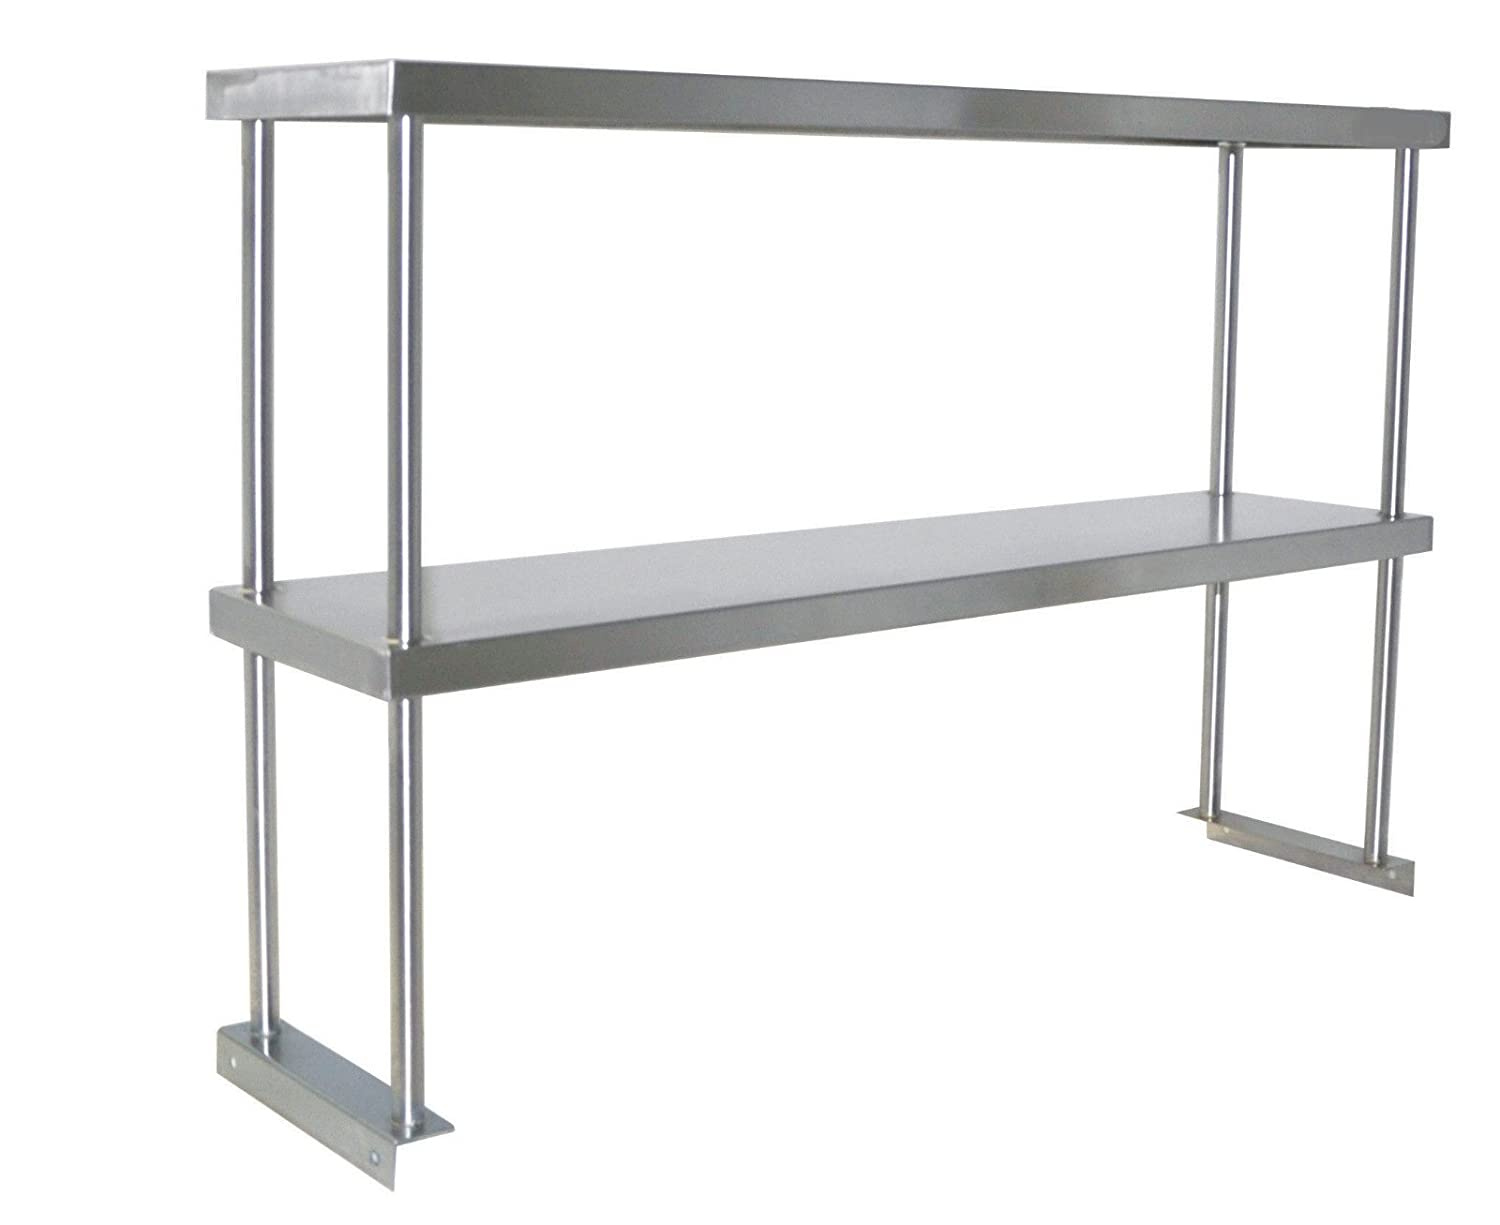 Amazon.com: Adjustable Double Overshelf 14 X 48 - Stainless Steel ...